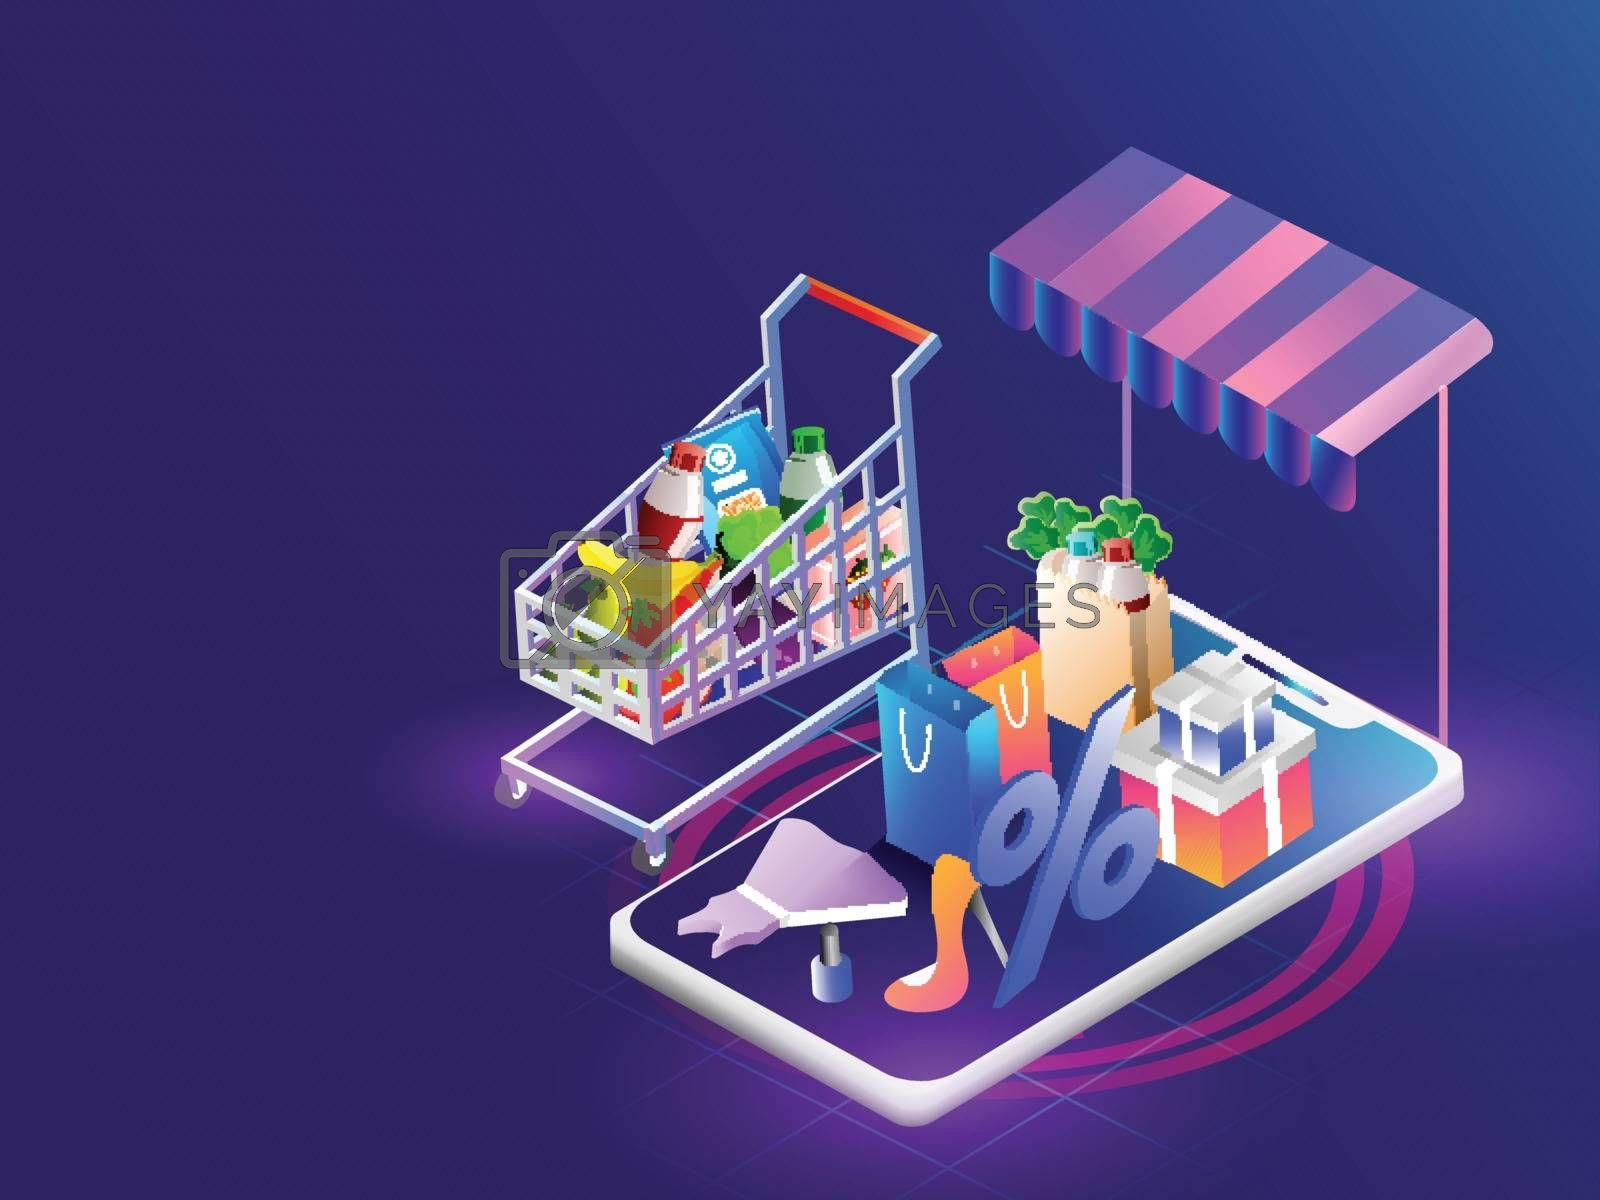 Royalty free image of Isometric illustration of smartphone with multiple shopping equi by aispl